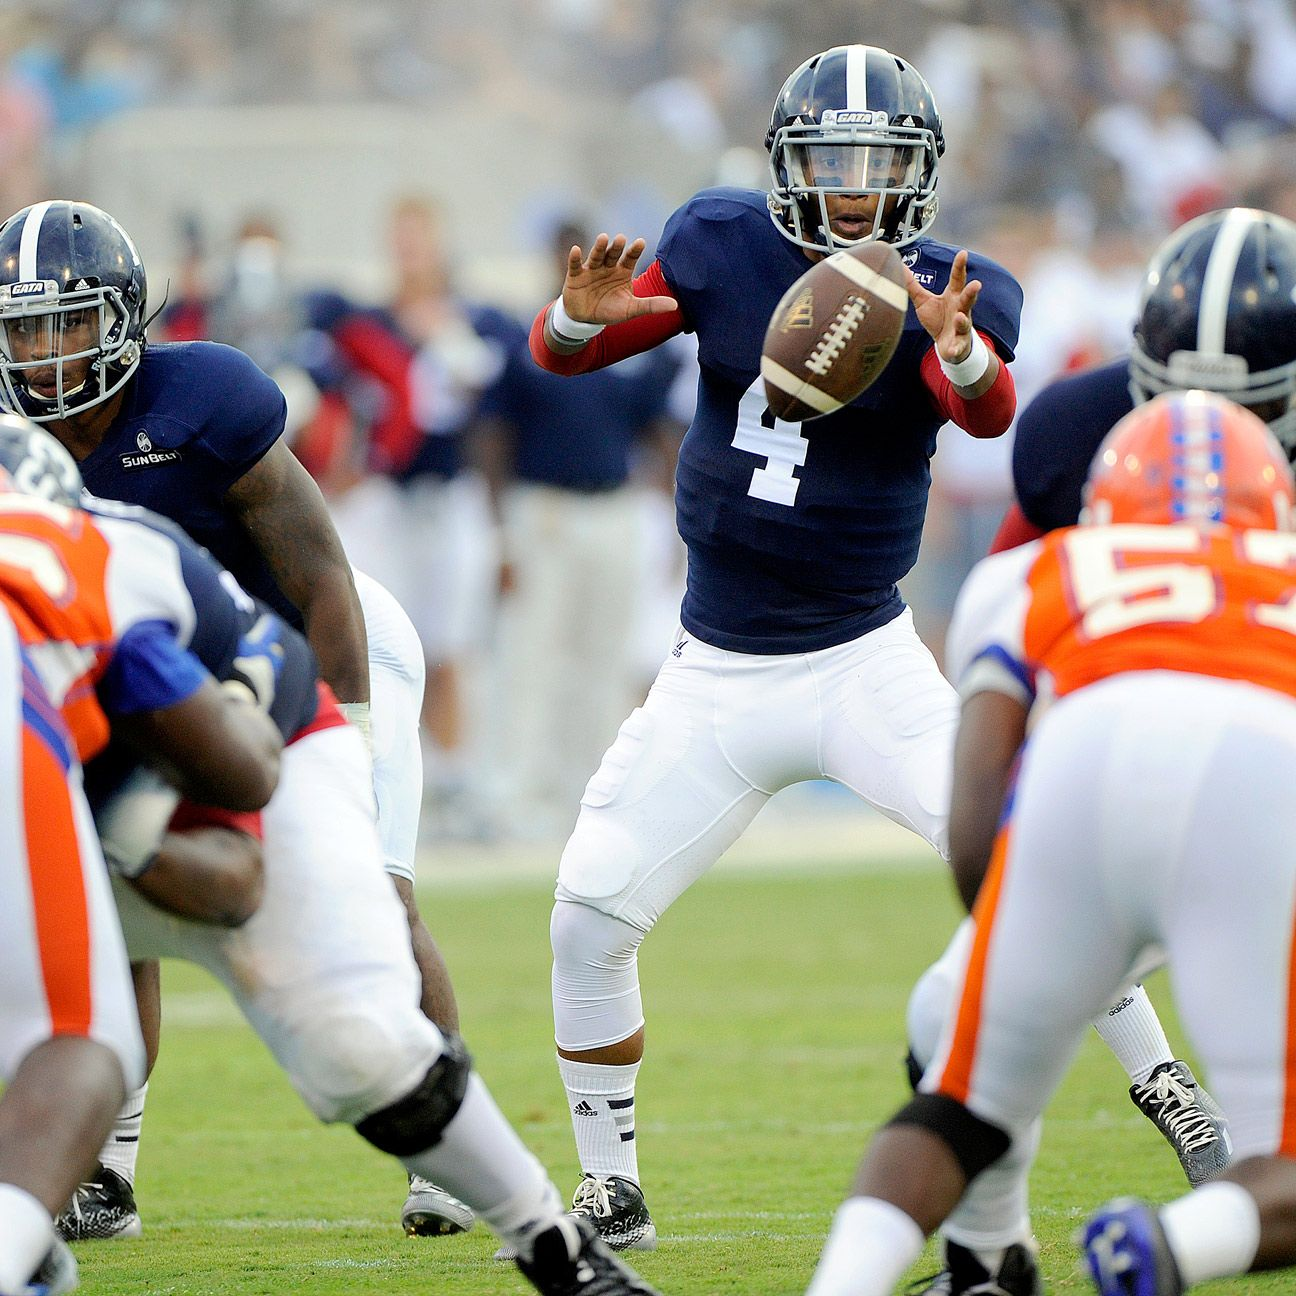 best college football bets today ncaaf playoff